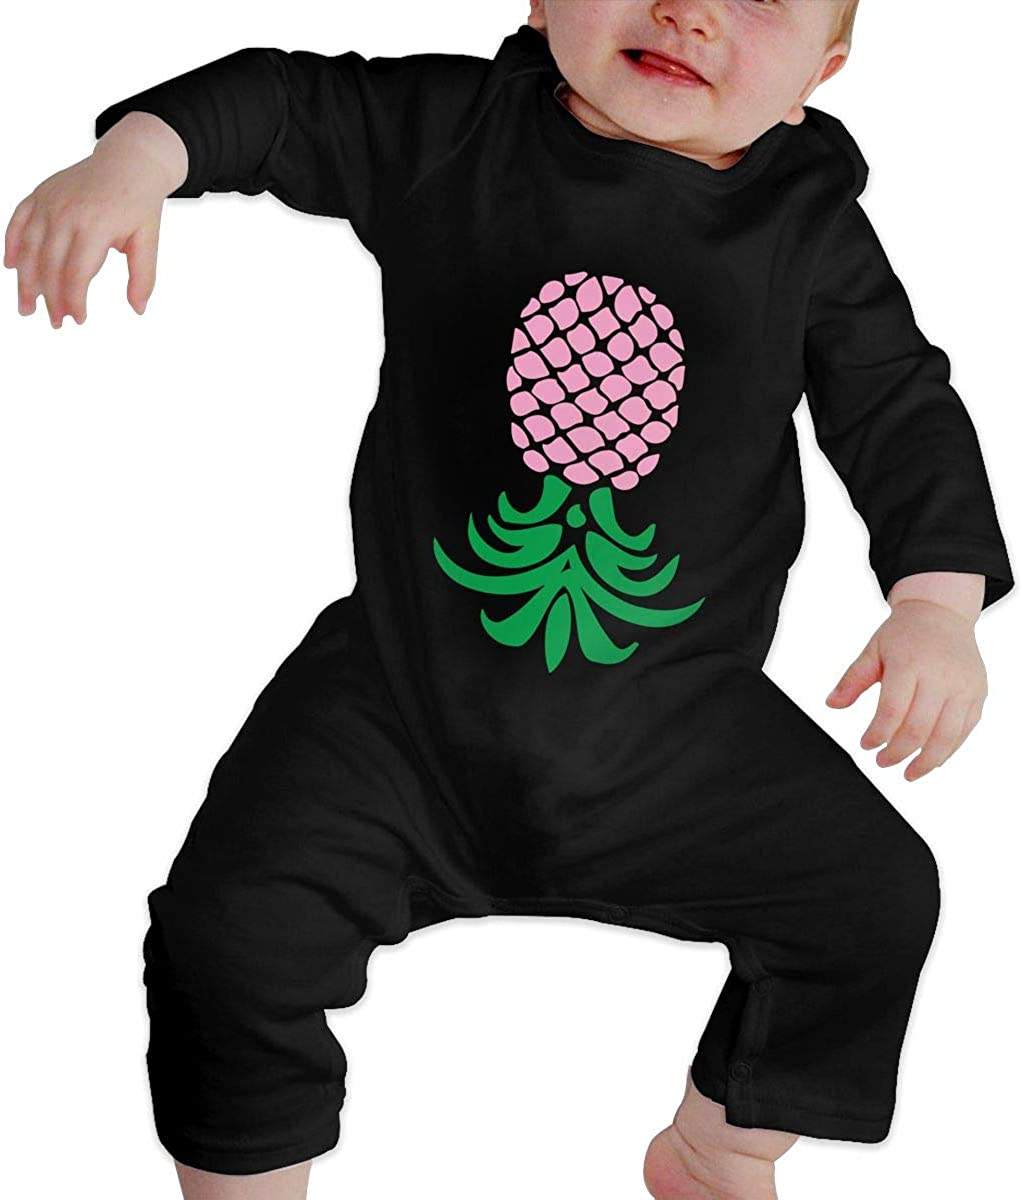 Upside Down Pineapple Organic One-Piece Bodysuits Coverall Outfits BKNGDG8Q Toddler Baby Boy Romper Jumpsuit